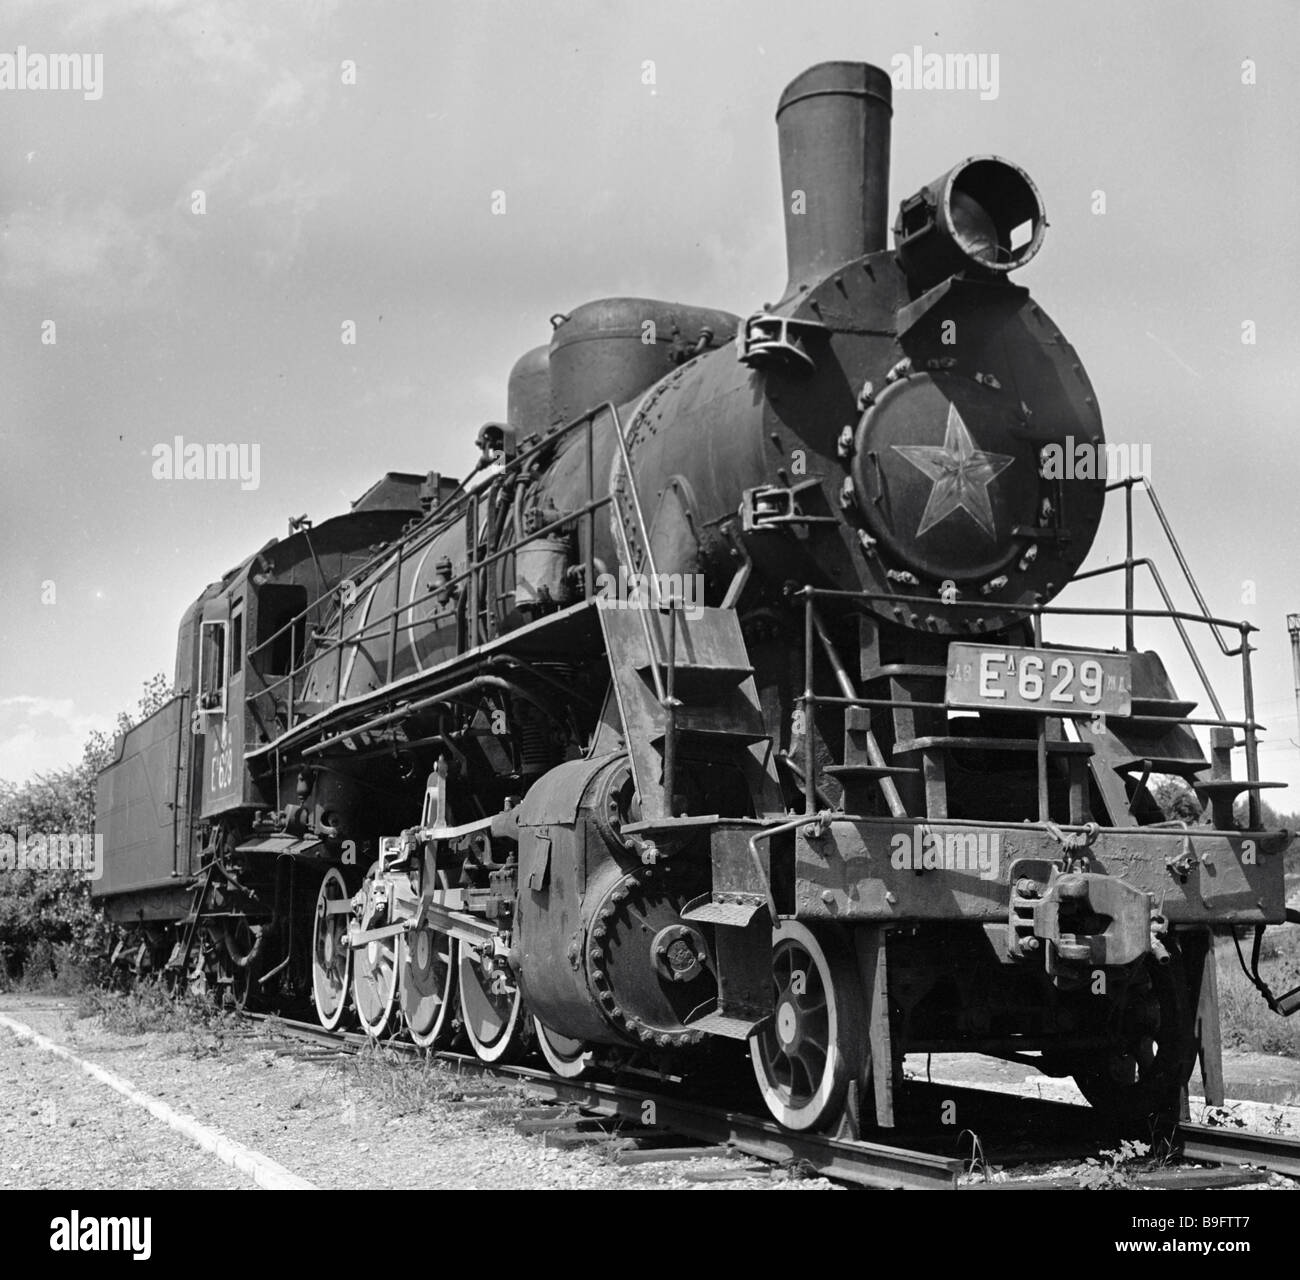 The steam locomotive in whose fire box Japanese interventionists burned Sergei Lazo a Far Eastern hero partisan - Stock Image